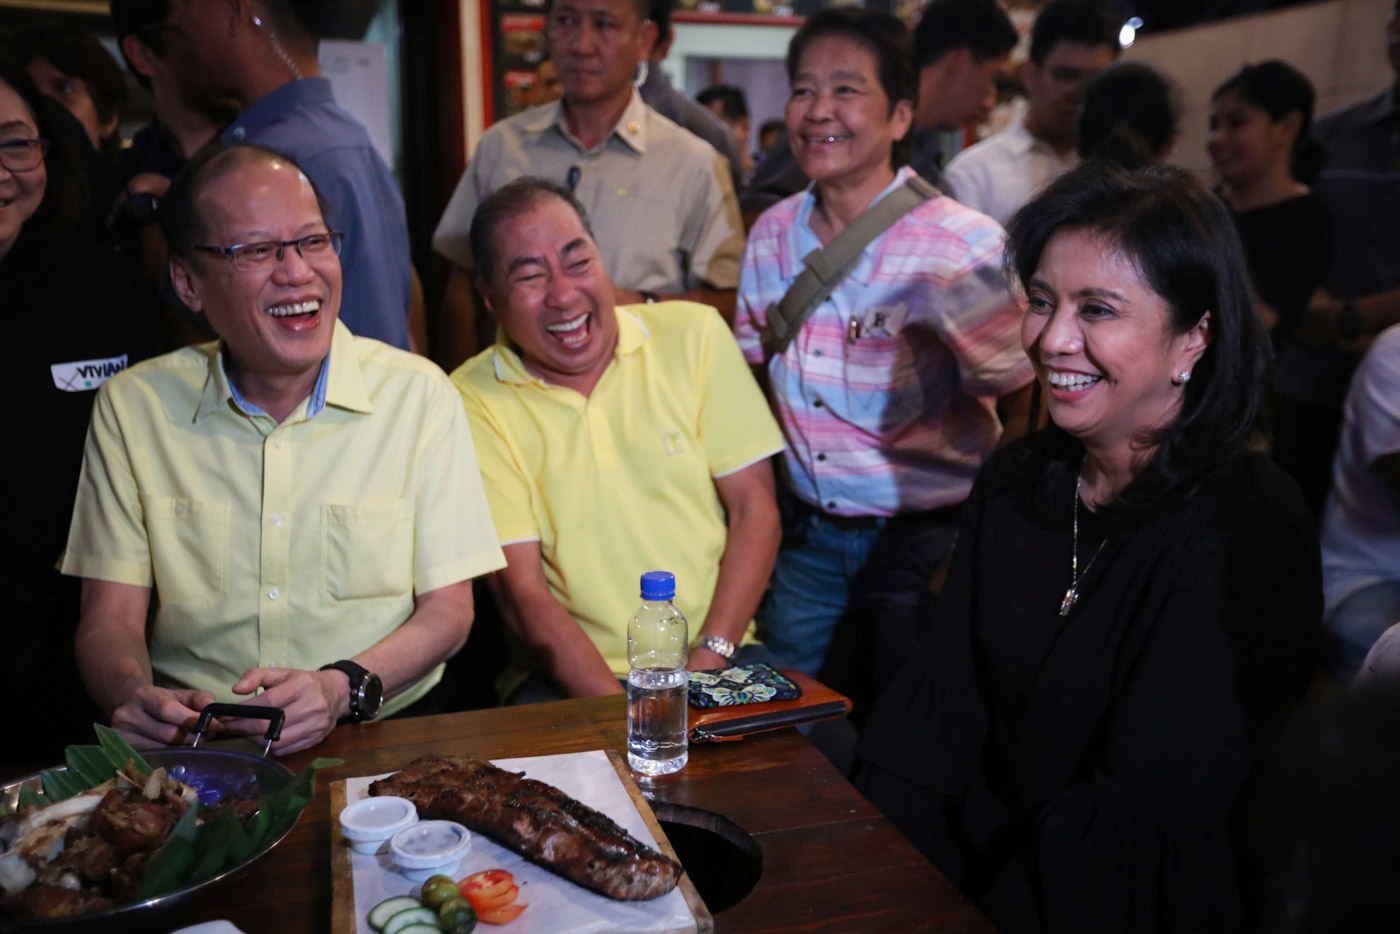 STALWARTS. Vice President Leni Robredo in a light moment with former president Benigno Aquino III (left) and Oriental Mindoro Governor Alfonso Umali Jr (middle) at the LP anniversary party. Photo by OVP)